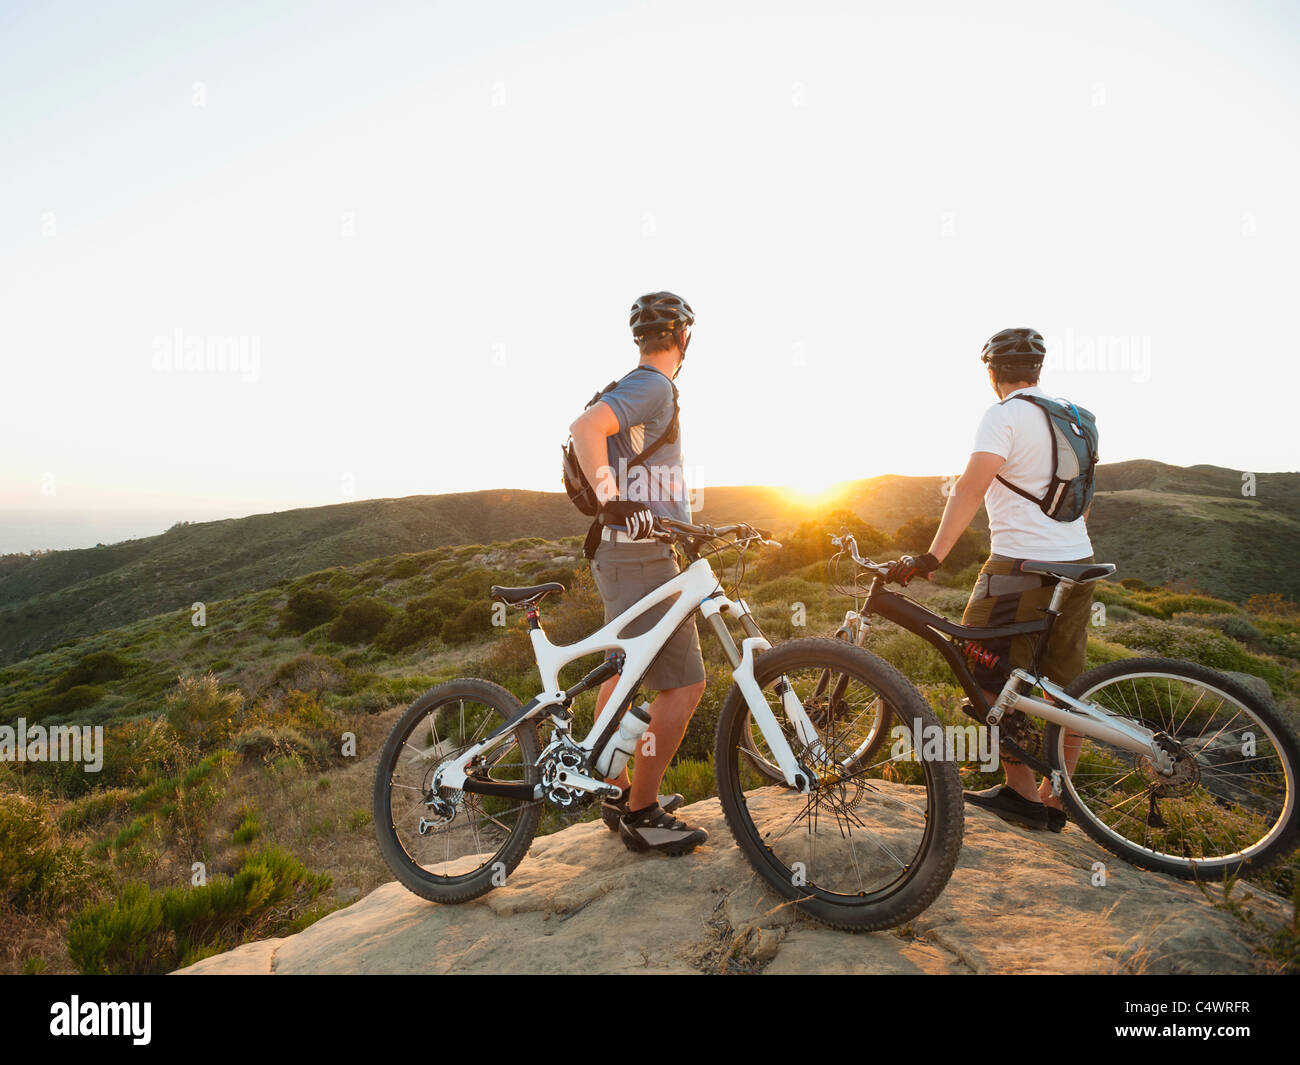 USA,California,Laguna Beach,deux motards sur hill looking at view Photo Stock